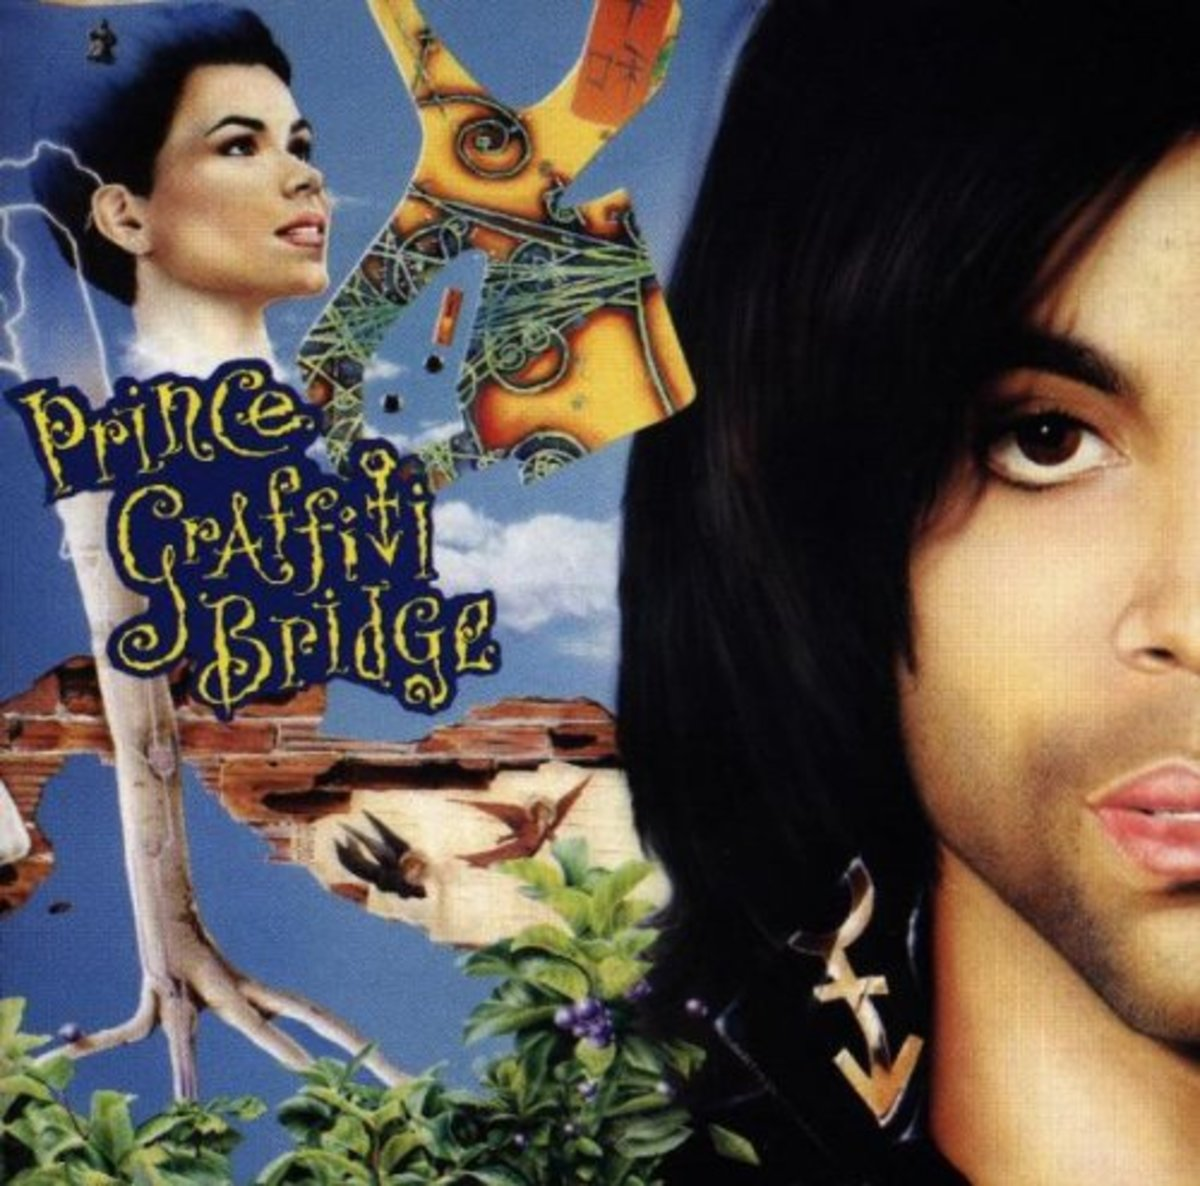 Prince's Graffiti Bridge movie was, in 1990, a commercial and critical disaster. The soundtrack did a bit better, but the sales were far from what he was once capable of.